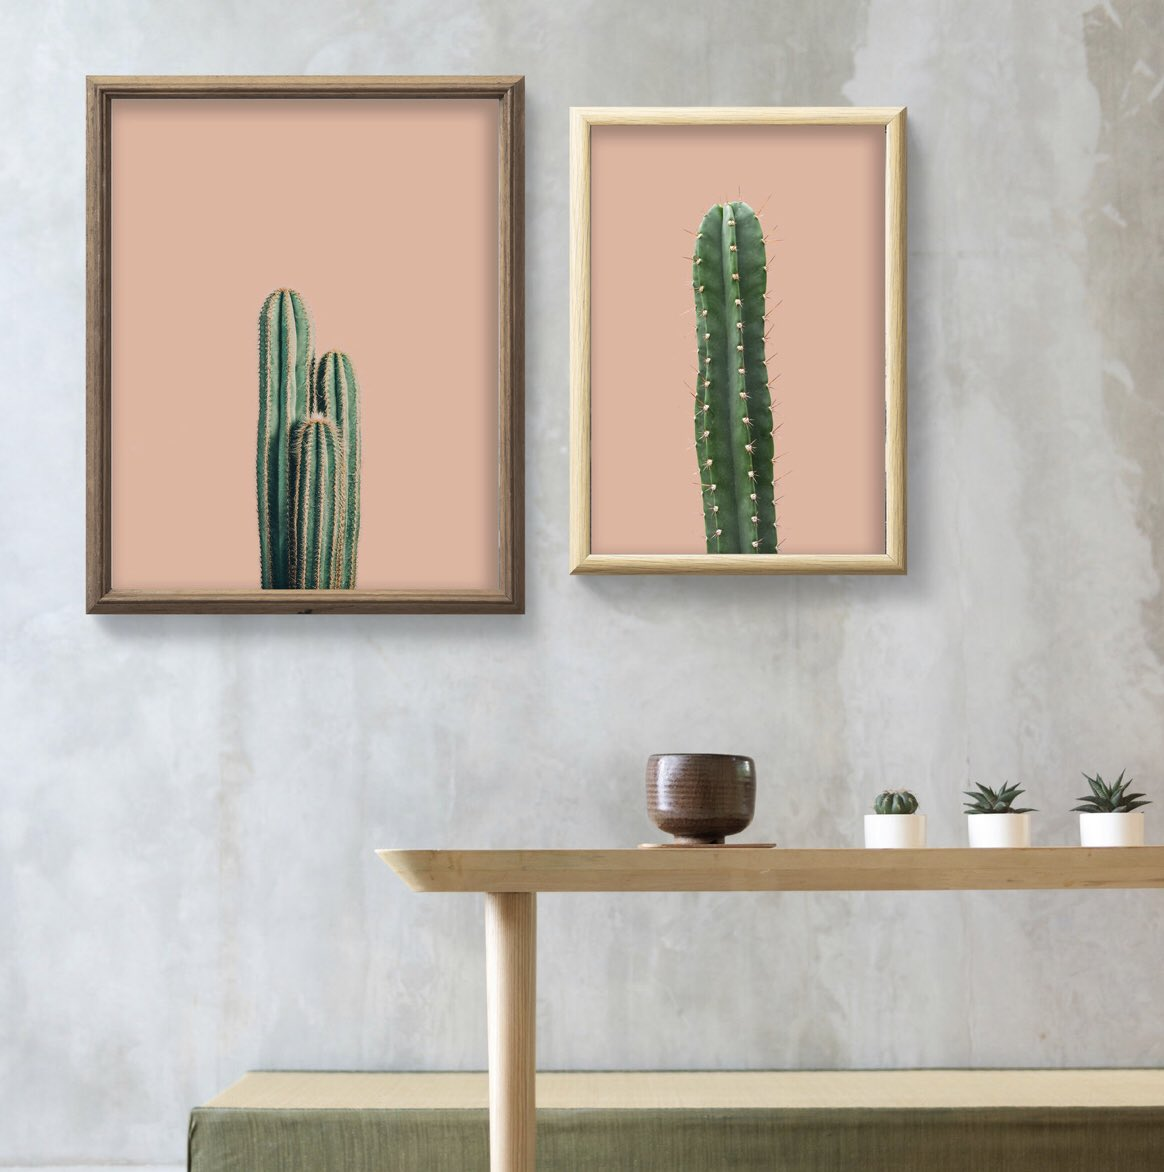 FIRST GIVEAWAY! I'm giving away a pair of A4 #livingcoral cactus posters to one of my lovely followers! RT and tag a friend  <br>http://pic.twitter.com/xNGM5zGCLn